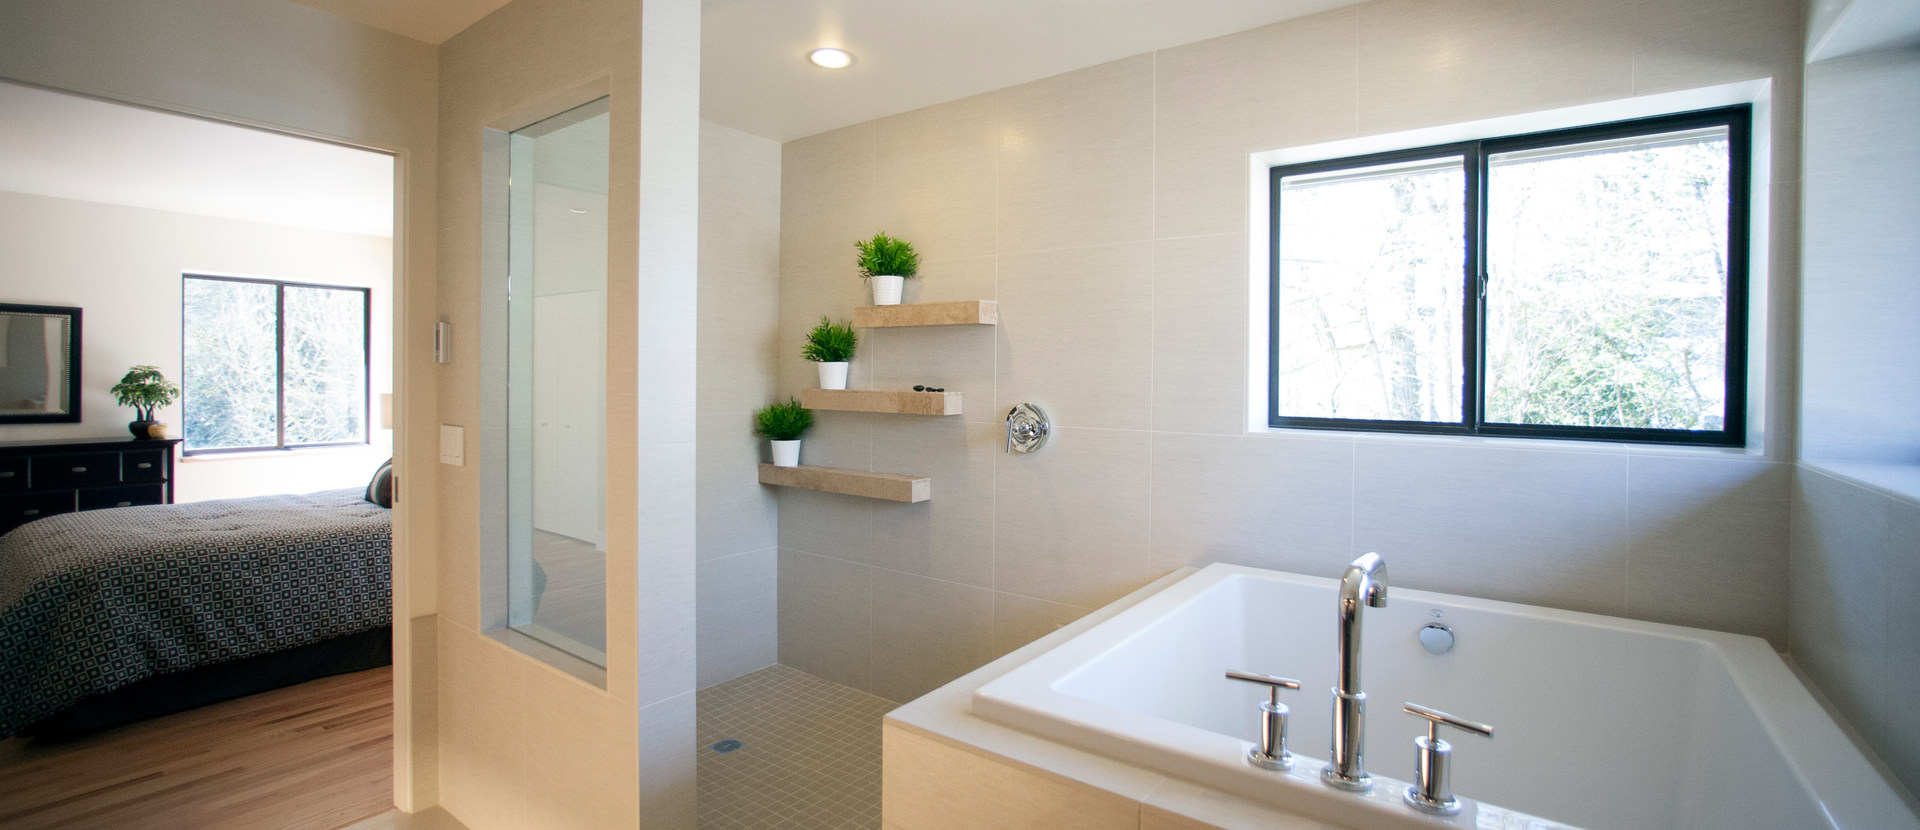 WALK-IN SHOWER WITH SOAKING TUB